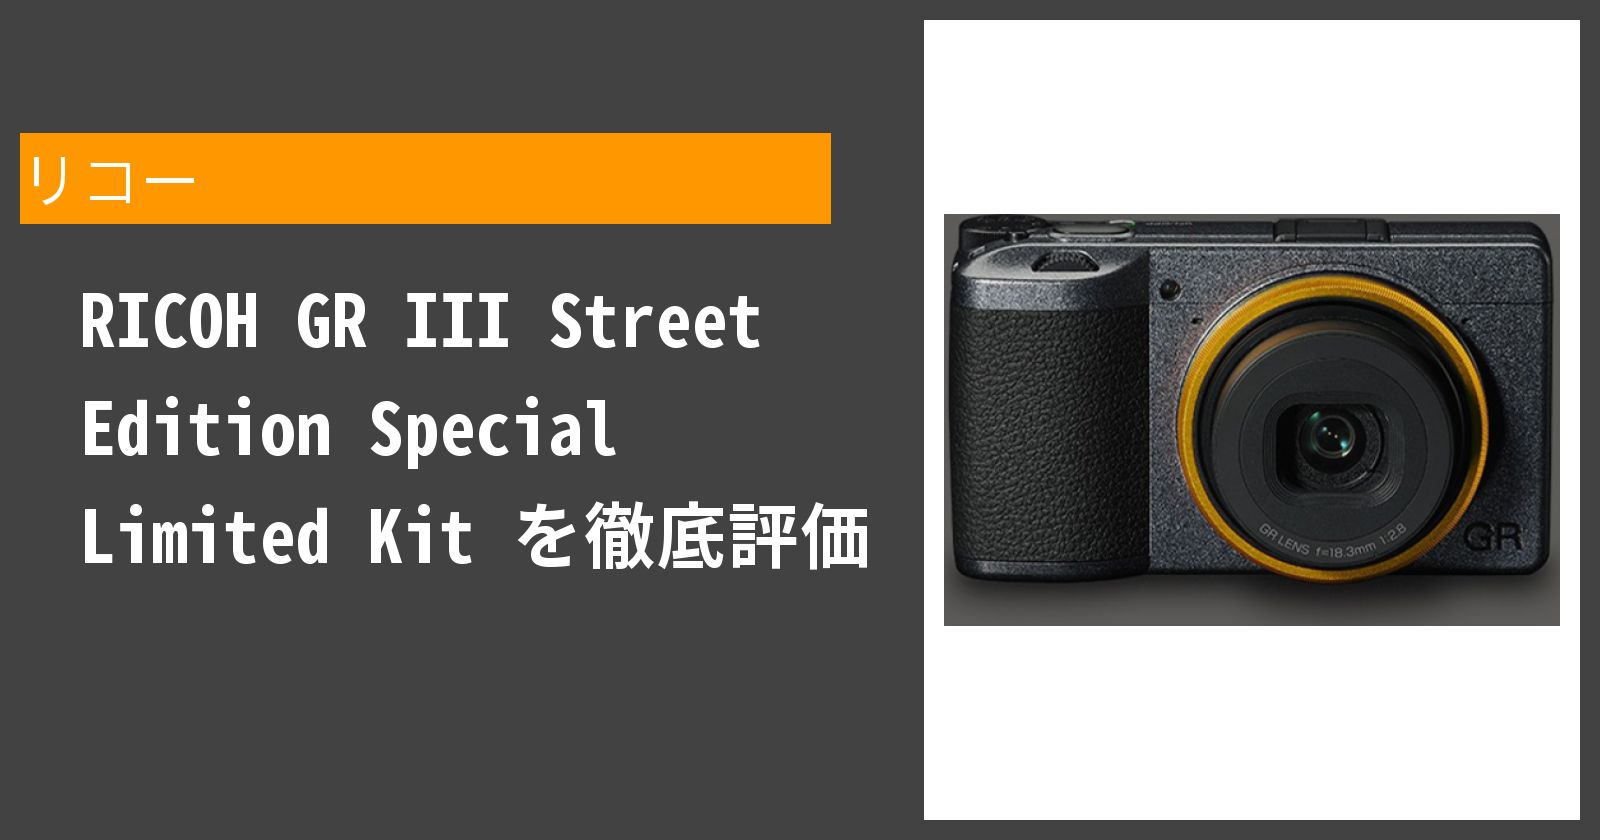 RICOH GR III Street Edition Special Limited Kitを徹底評価